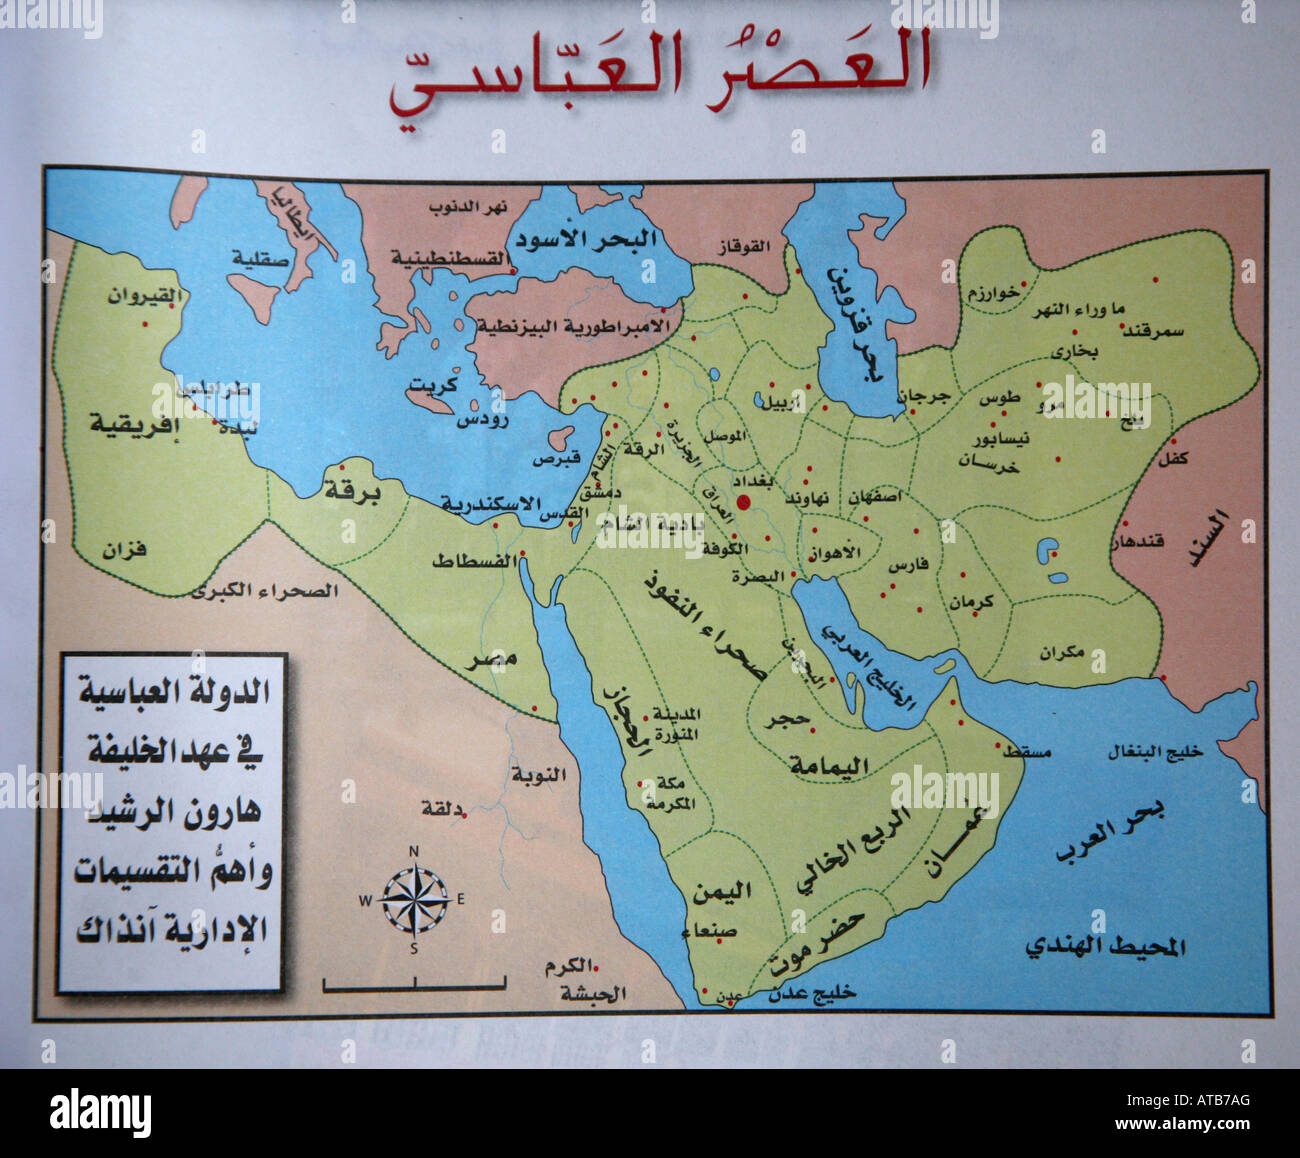 A map of the Middle East using Arabic script Stock Photo Royalty